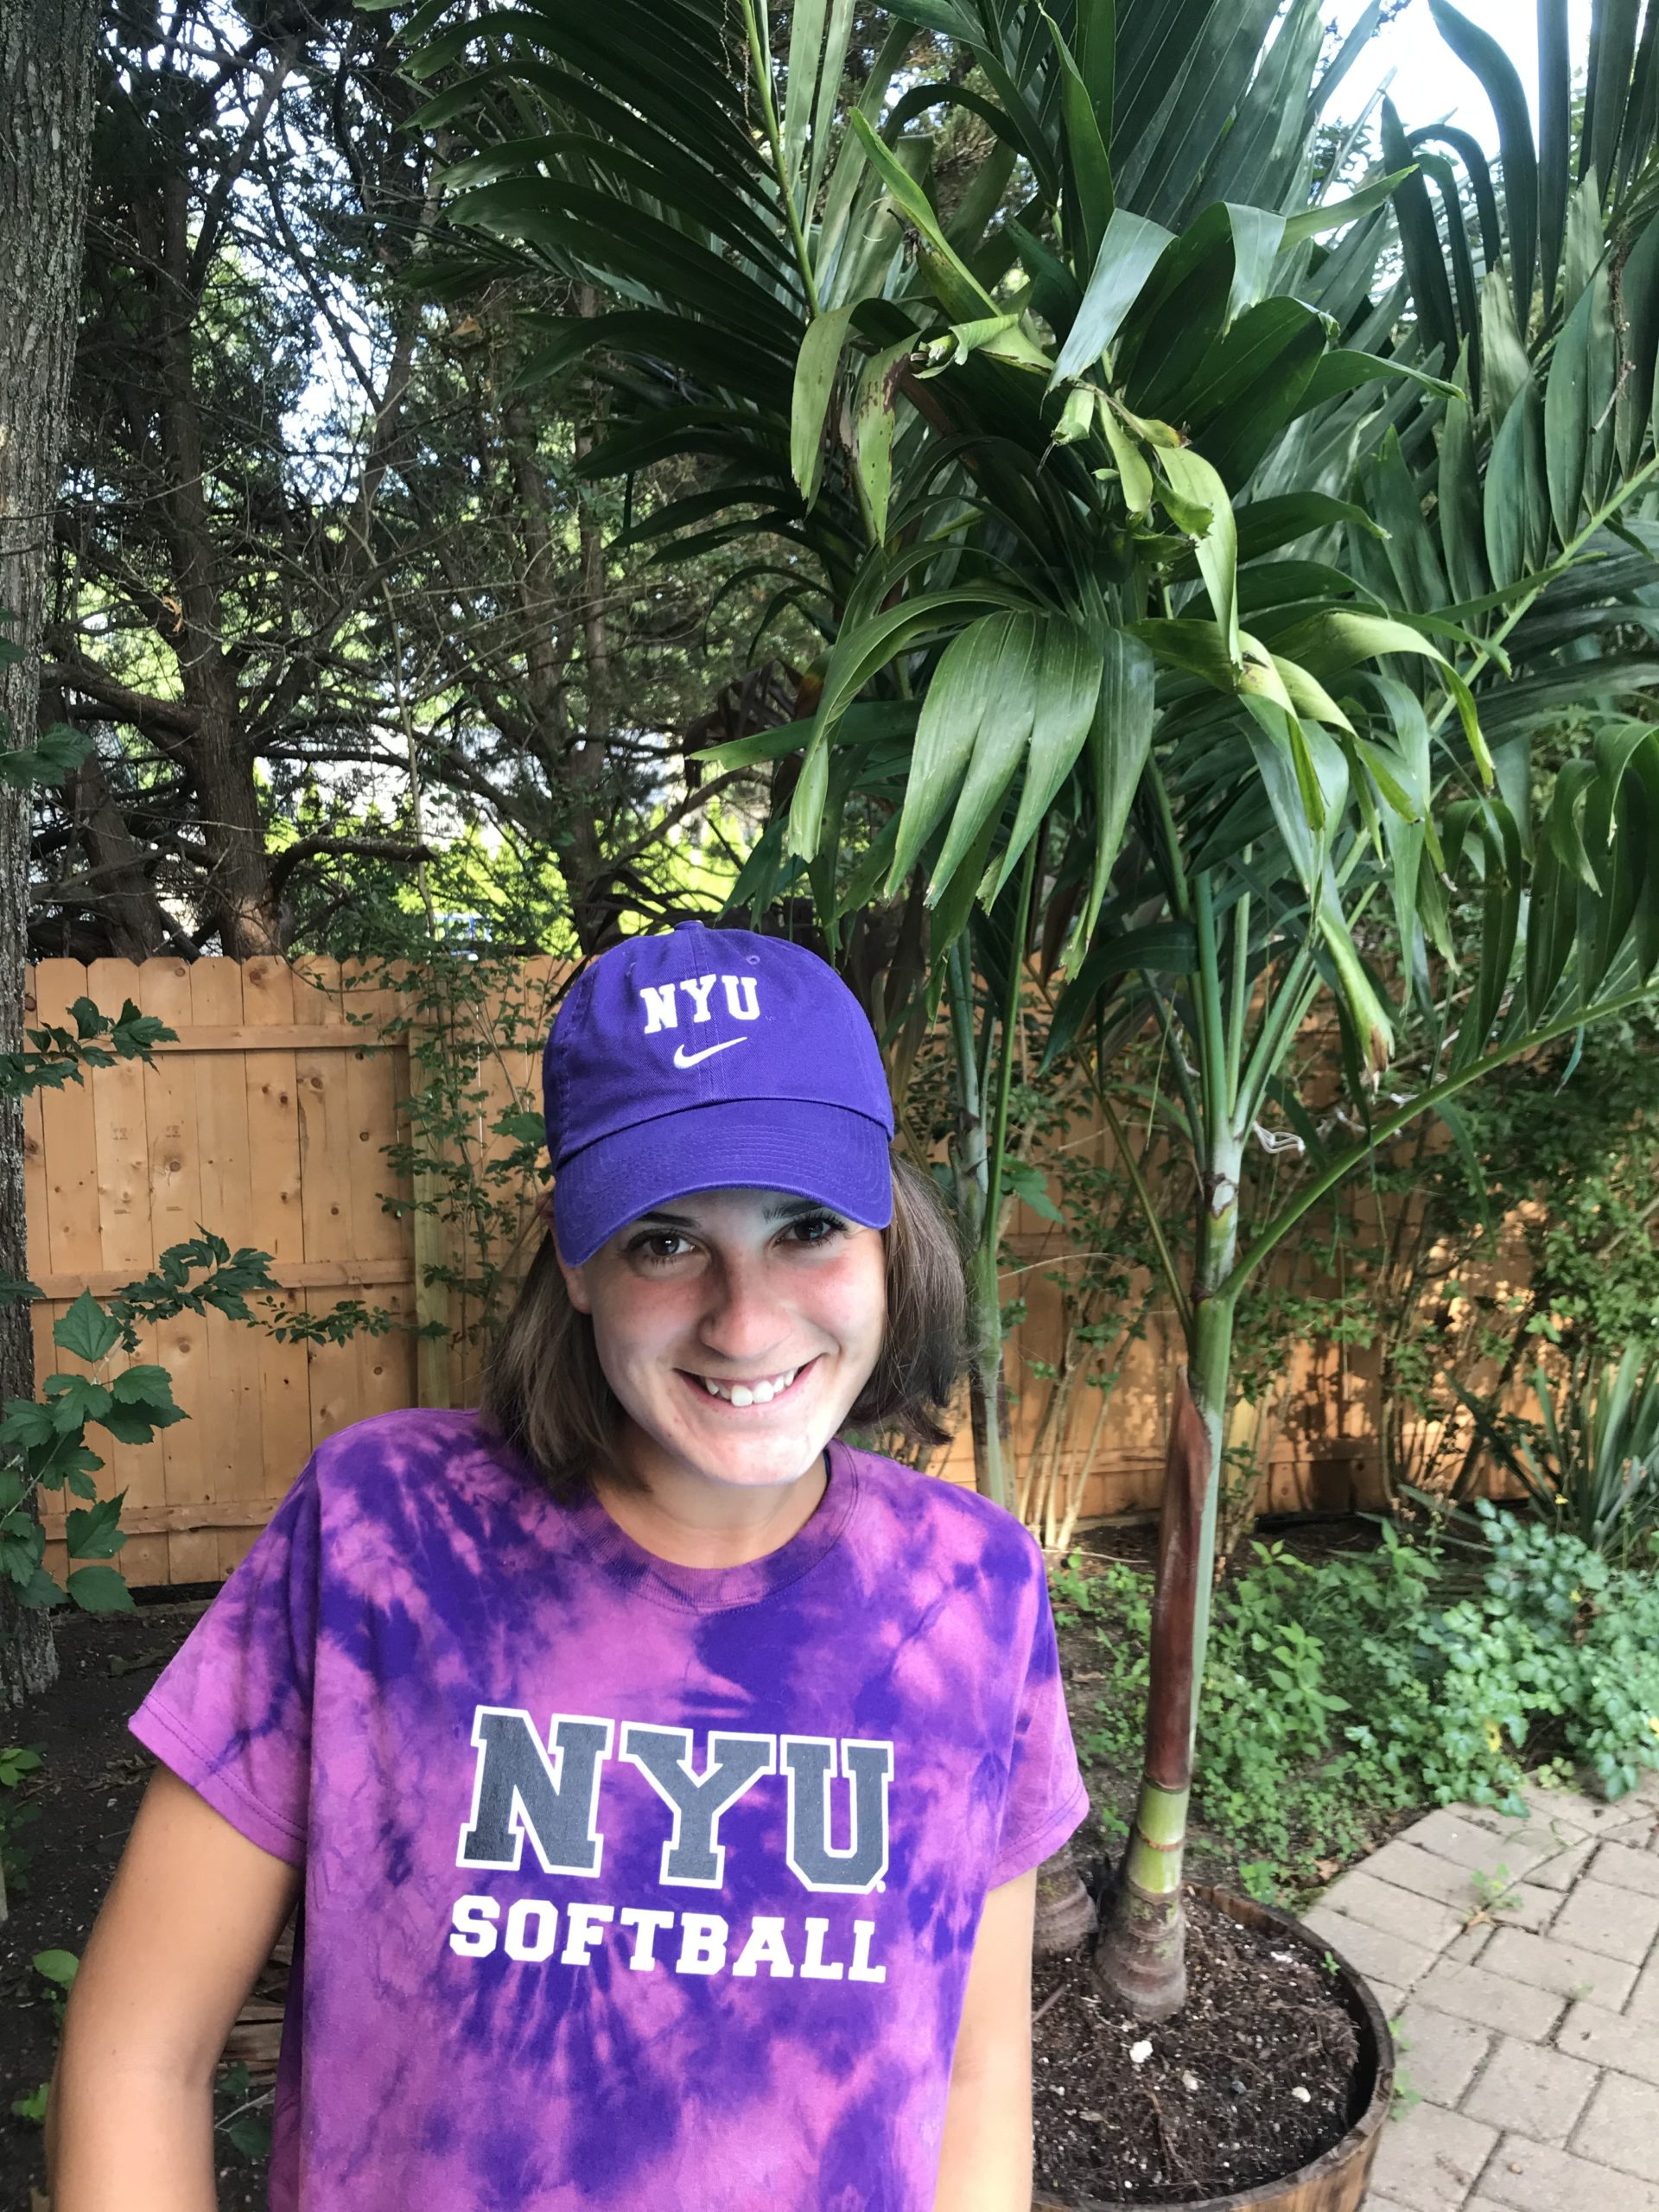 Lily Candelaria is very excited to attend NYU, where she will play on the softball team.